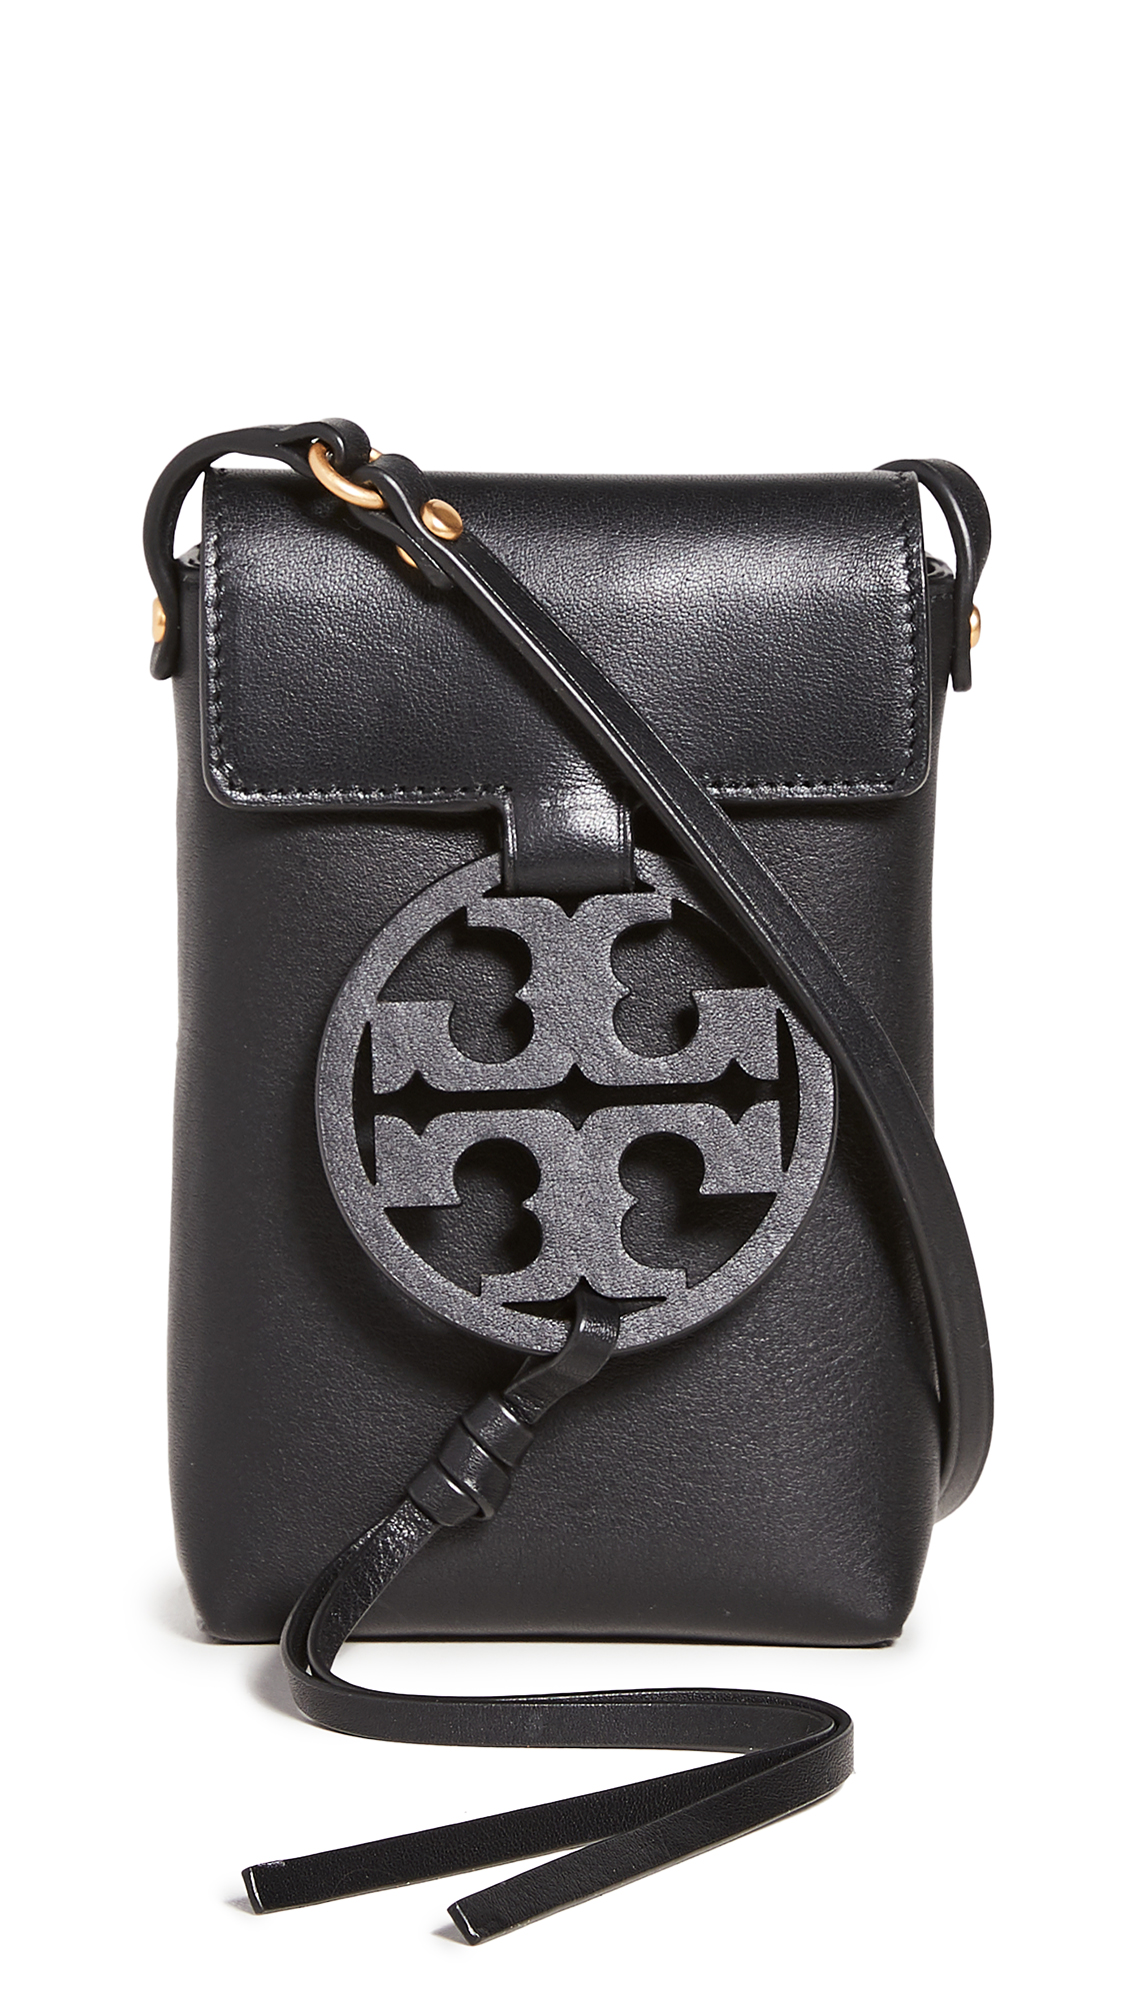 Tory Burch Miller Phone Crossbody Bag